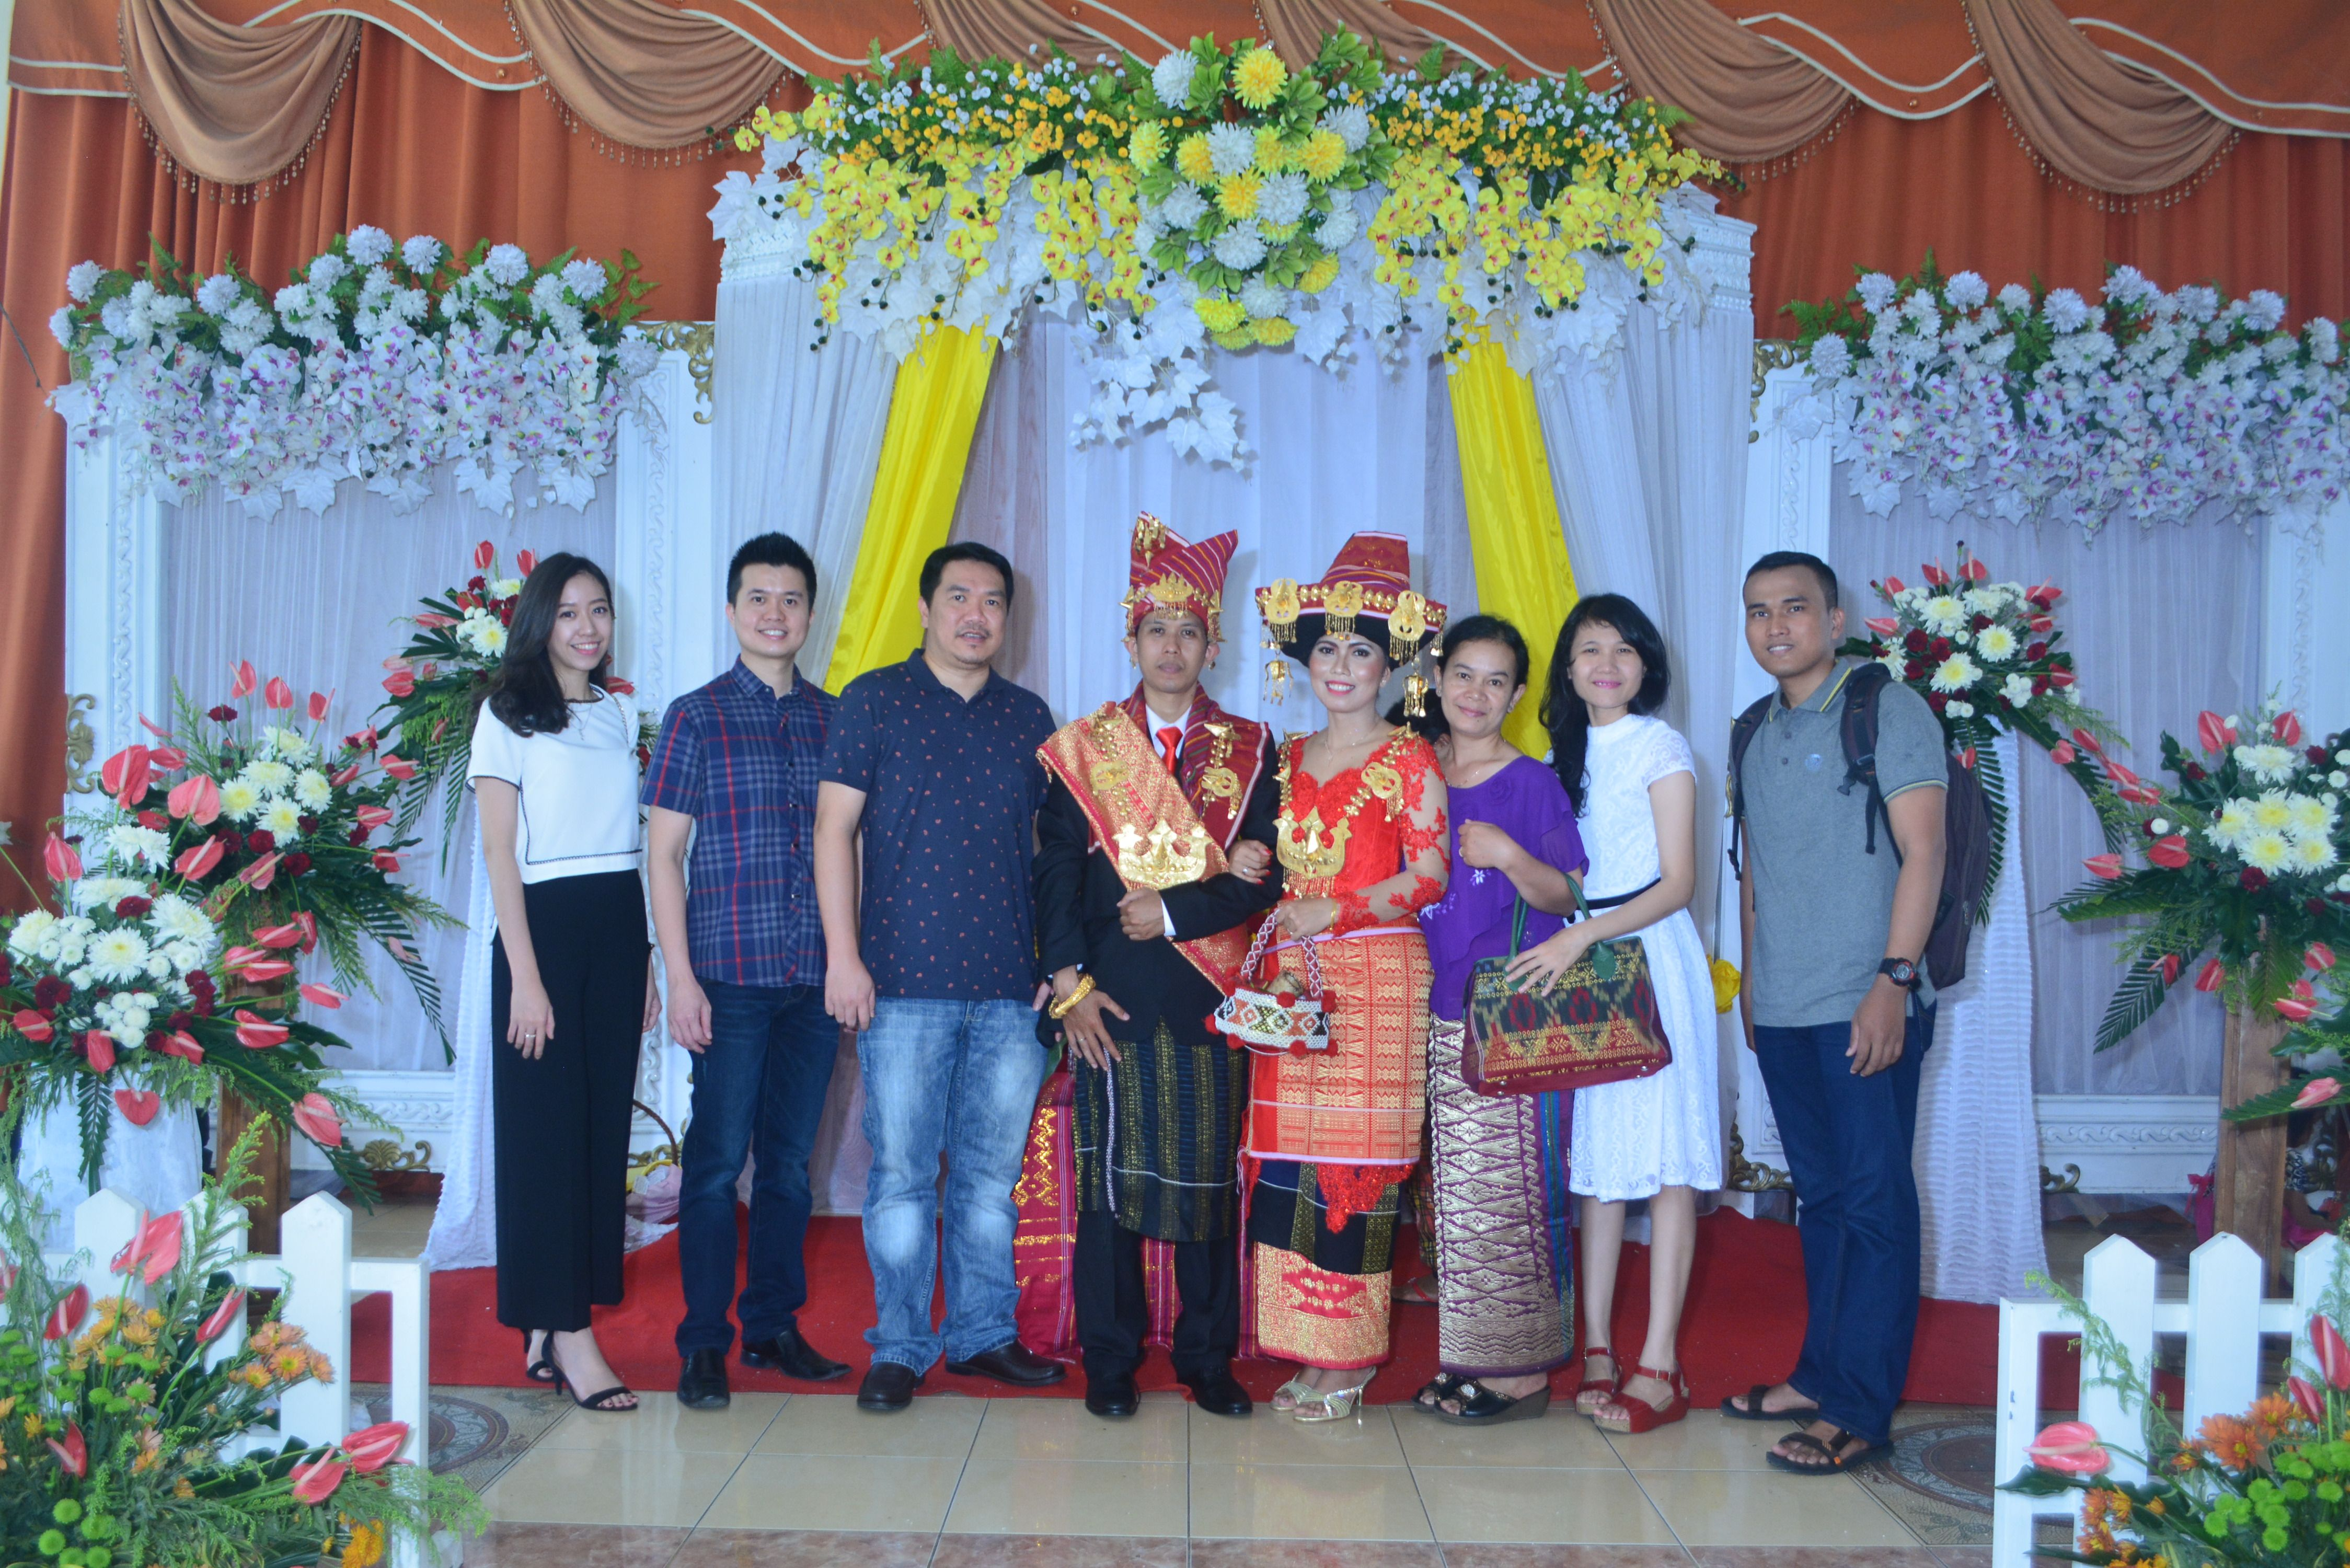 Karo wedding with cma cgm medan